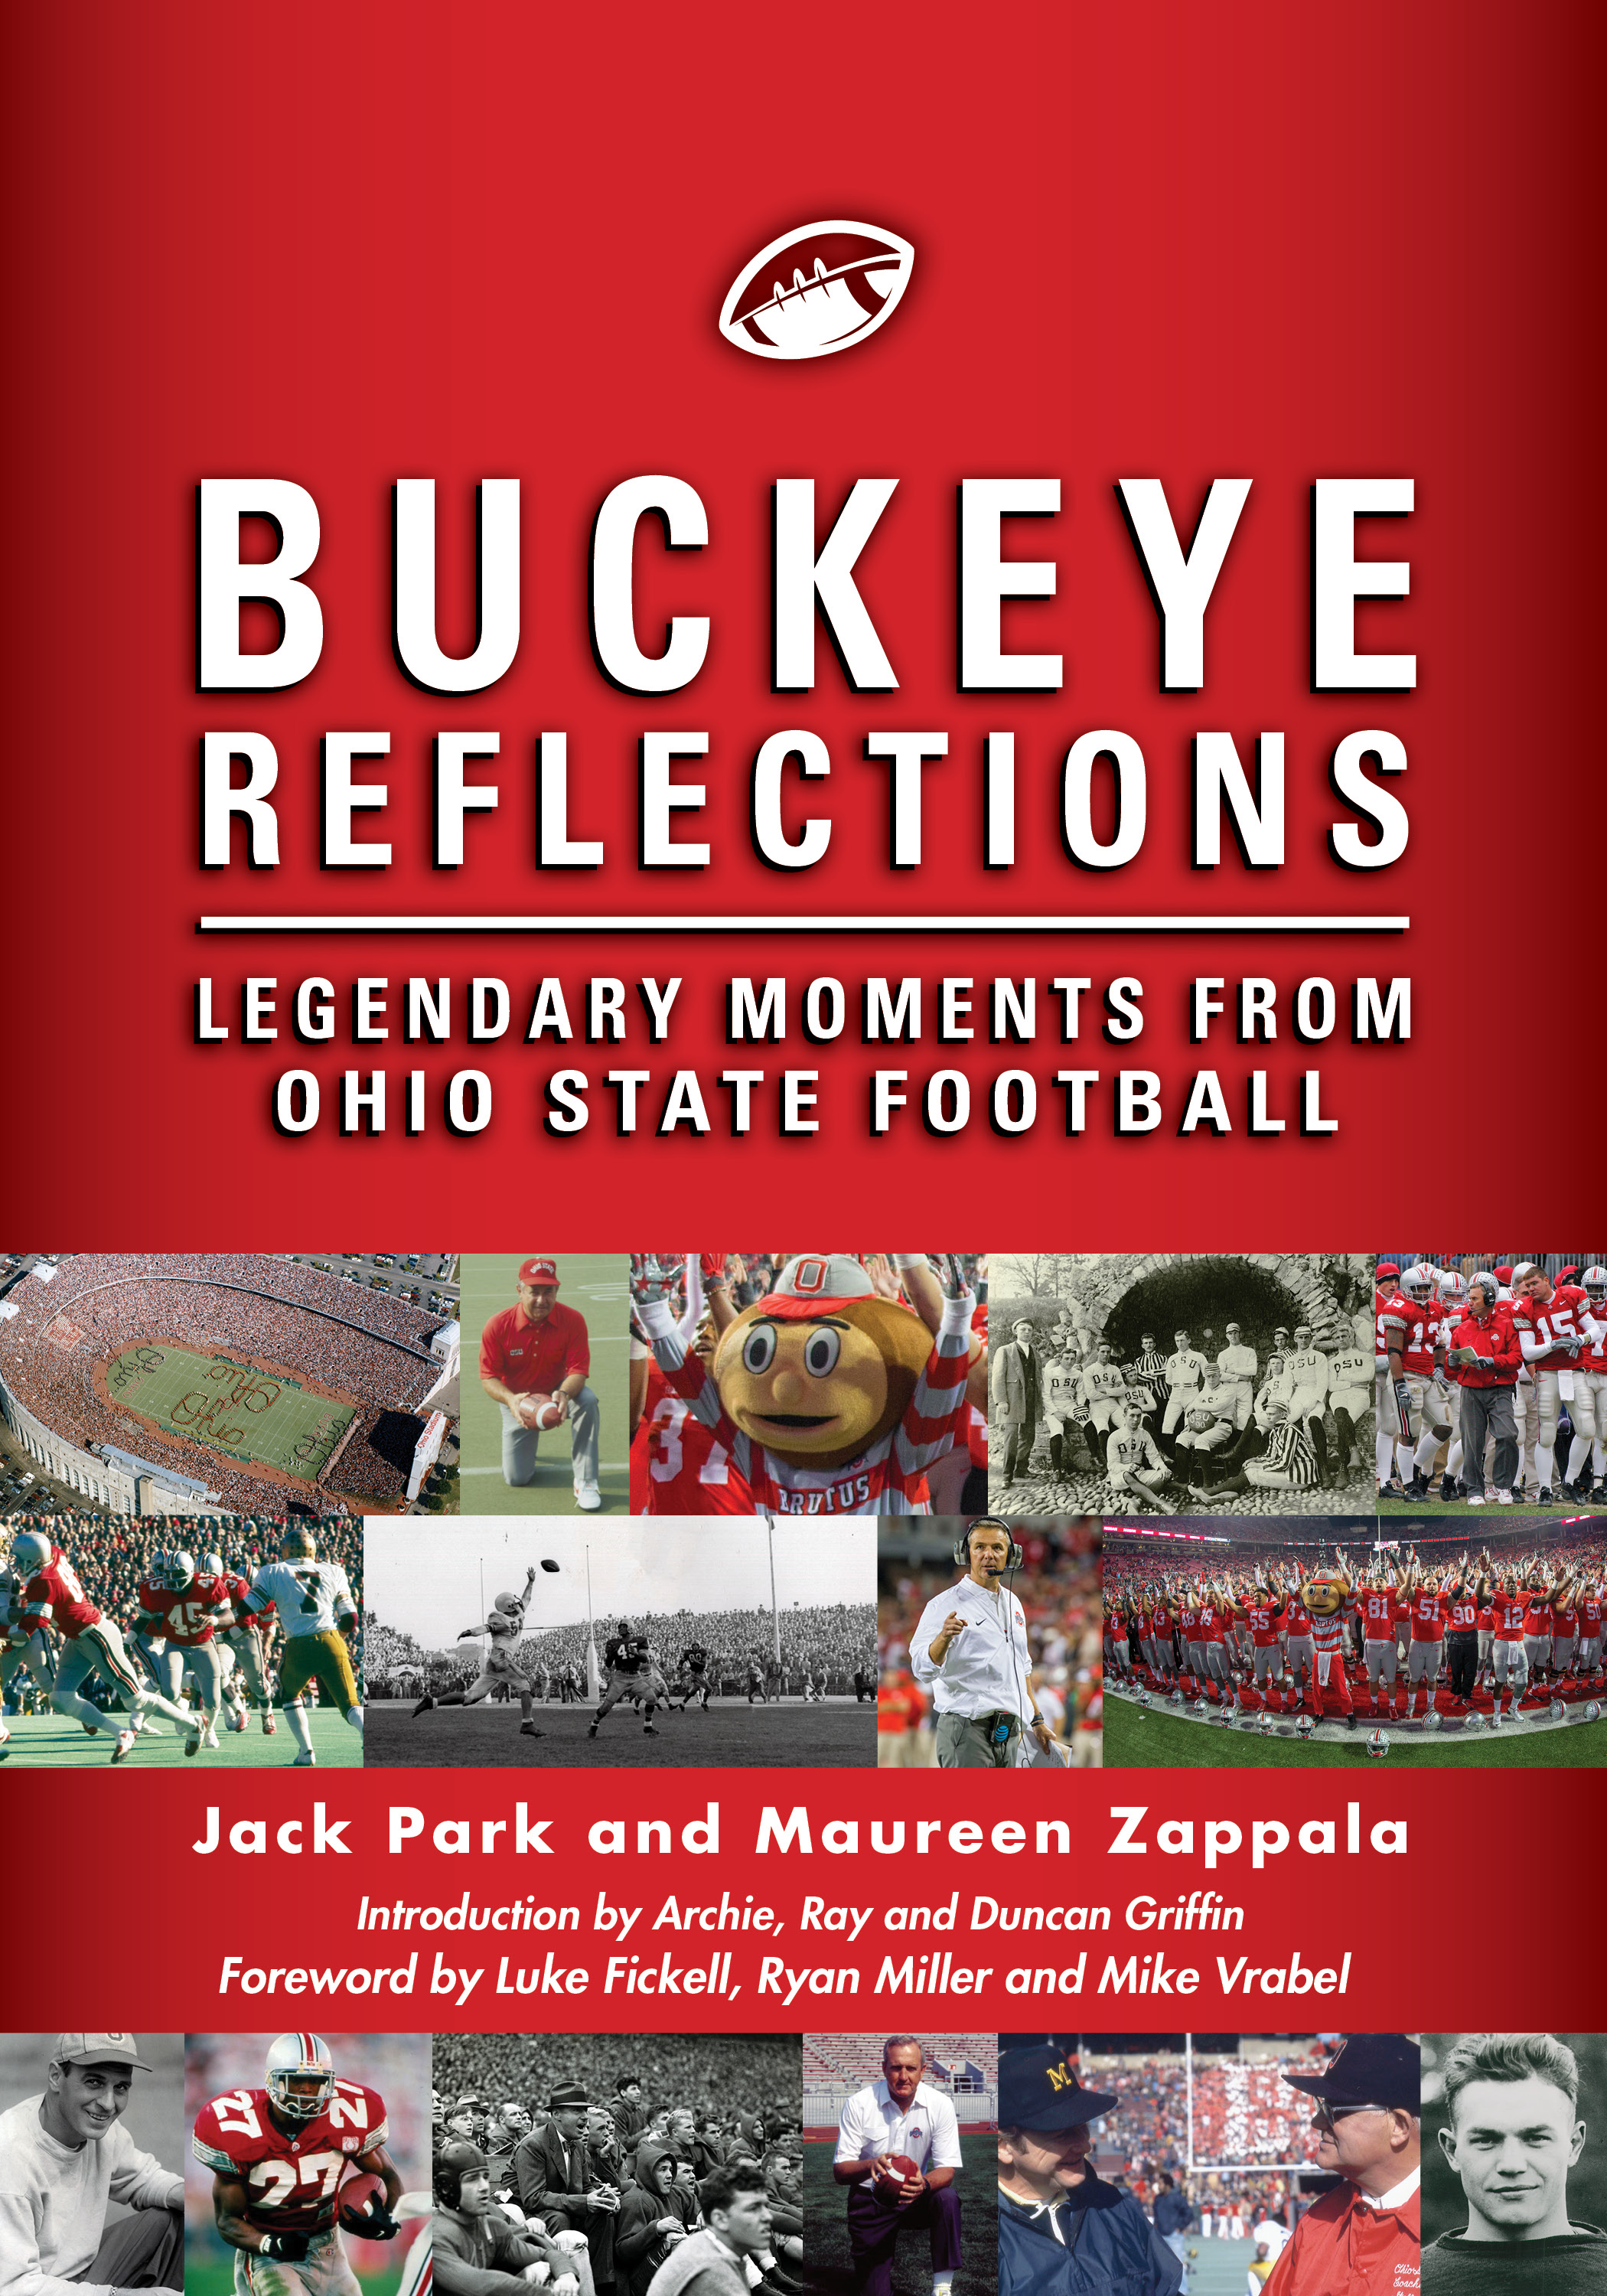 Buckeye Reflections - by Jack Park and Maureen Zappala